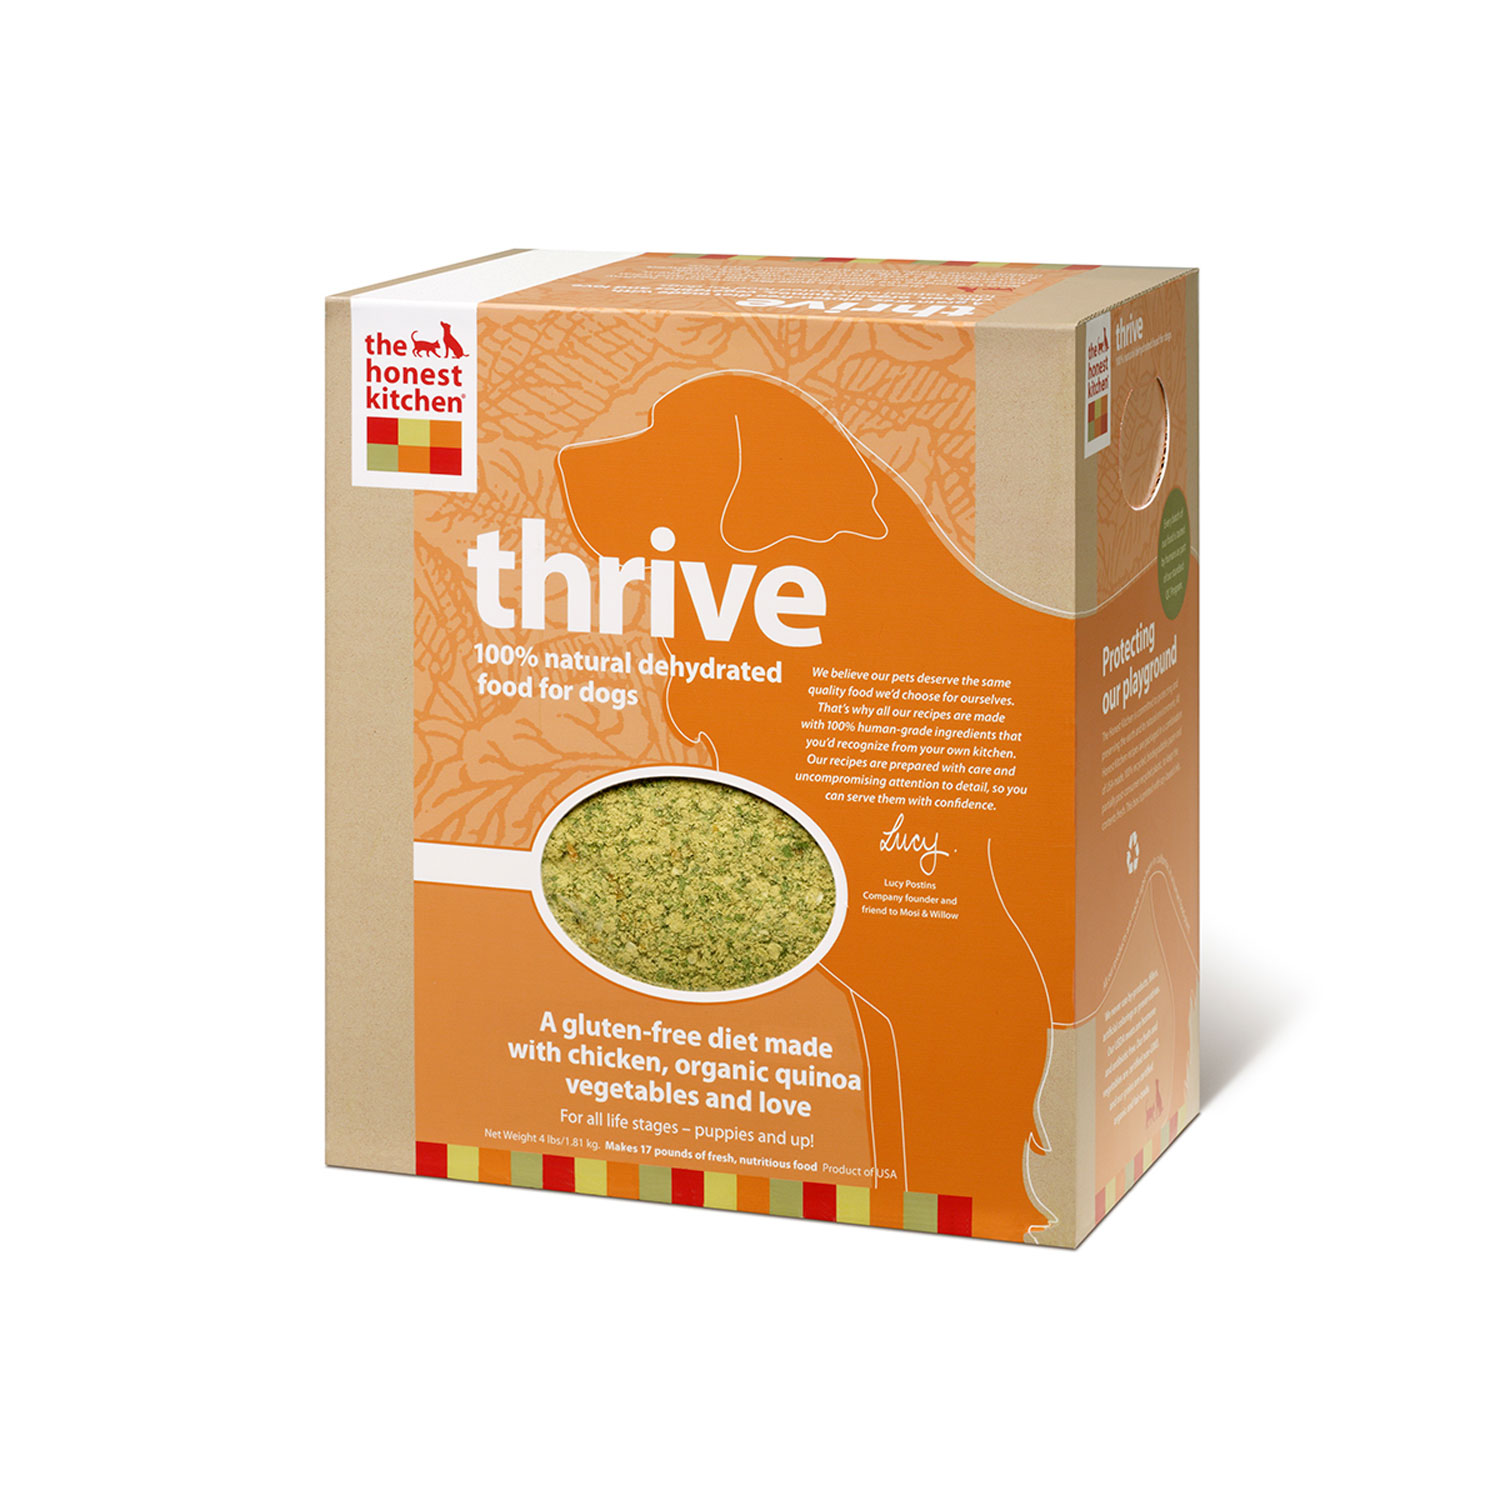 amazing The Honest Kitchen Dog Food Recalls #7: FDA RELEASE u2013 February 21, 2013 u2013 The Honest Kitchen today announced that it is voluntarily recalling five lots of its Verve, Zeal and Thrive pet food ...